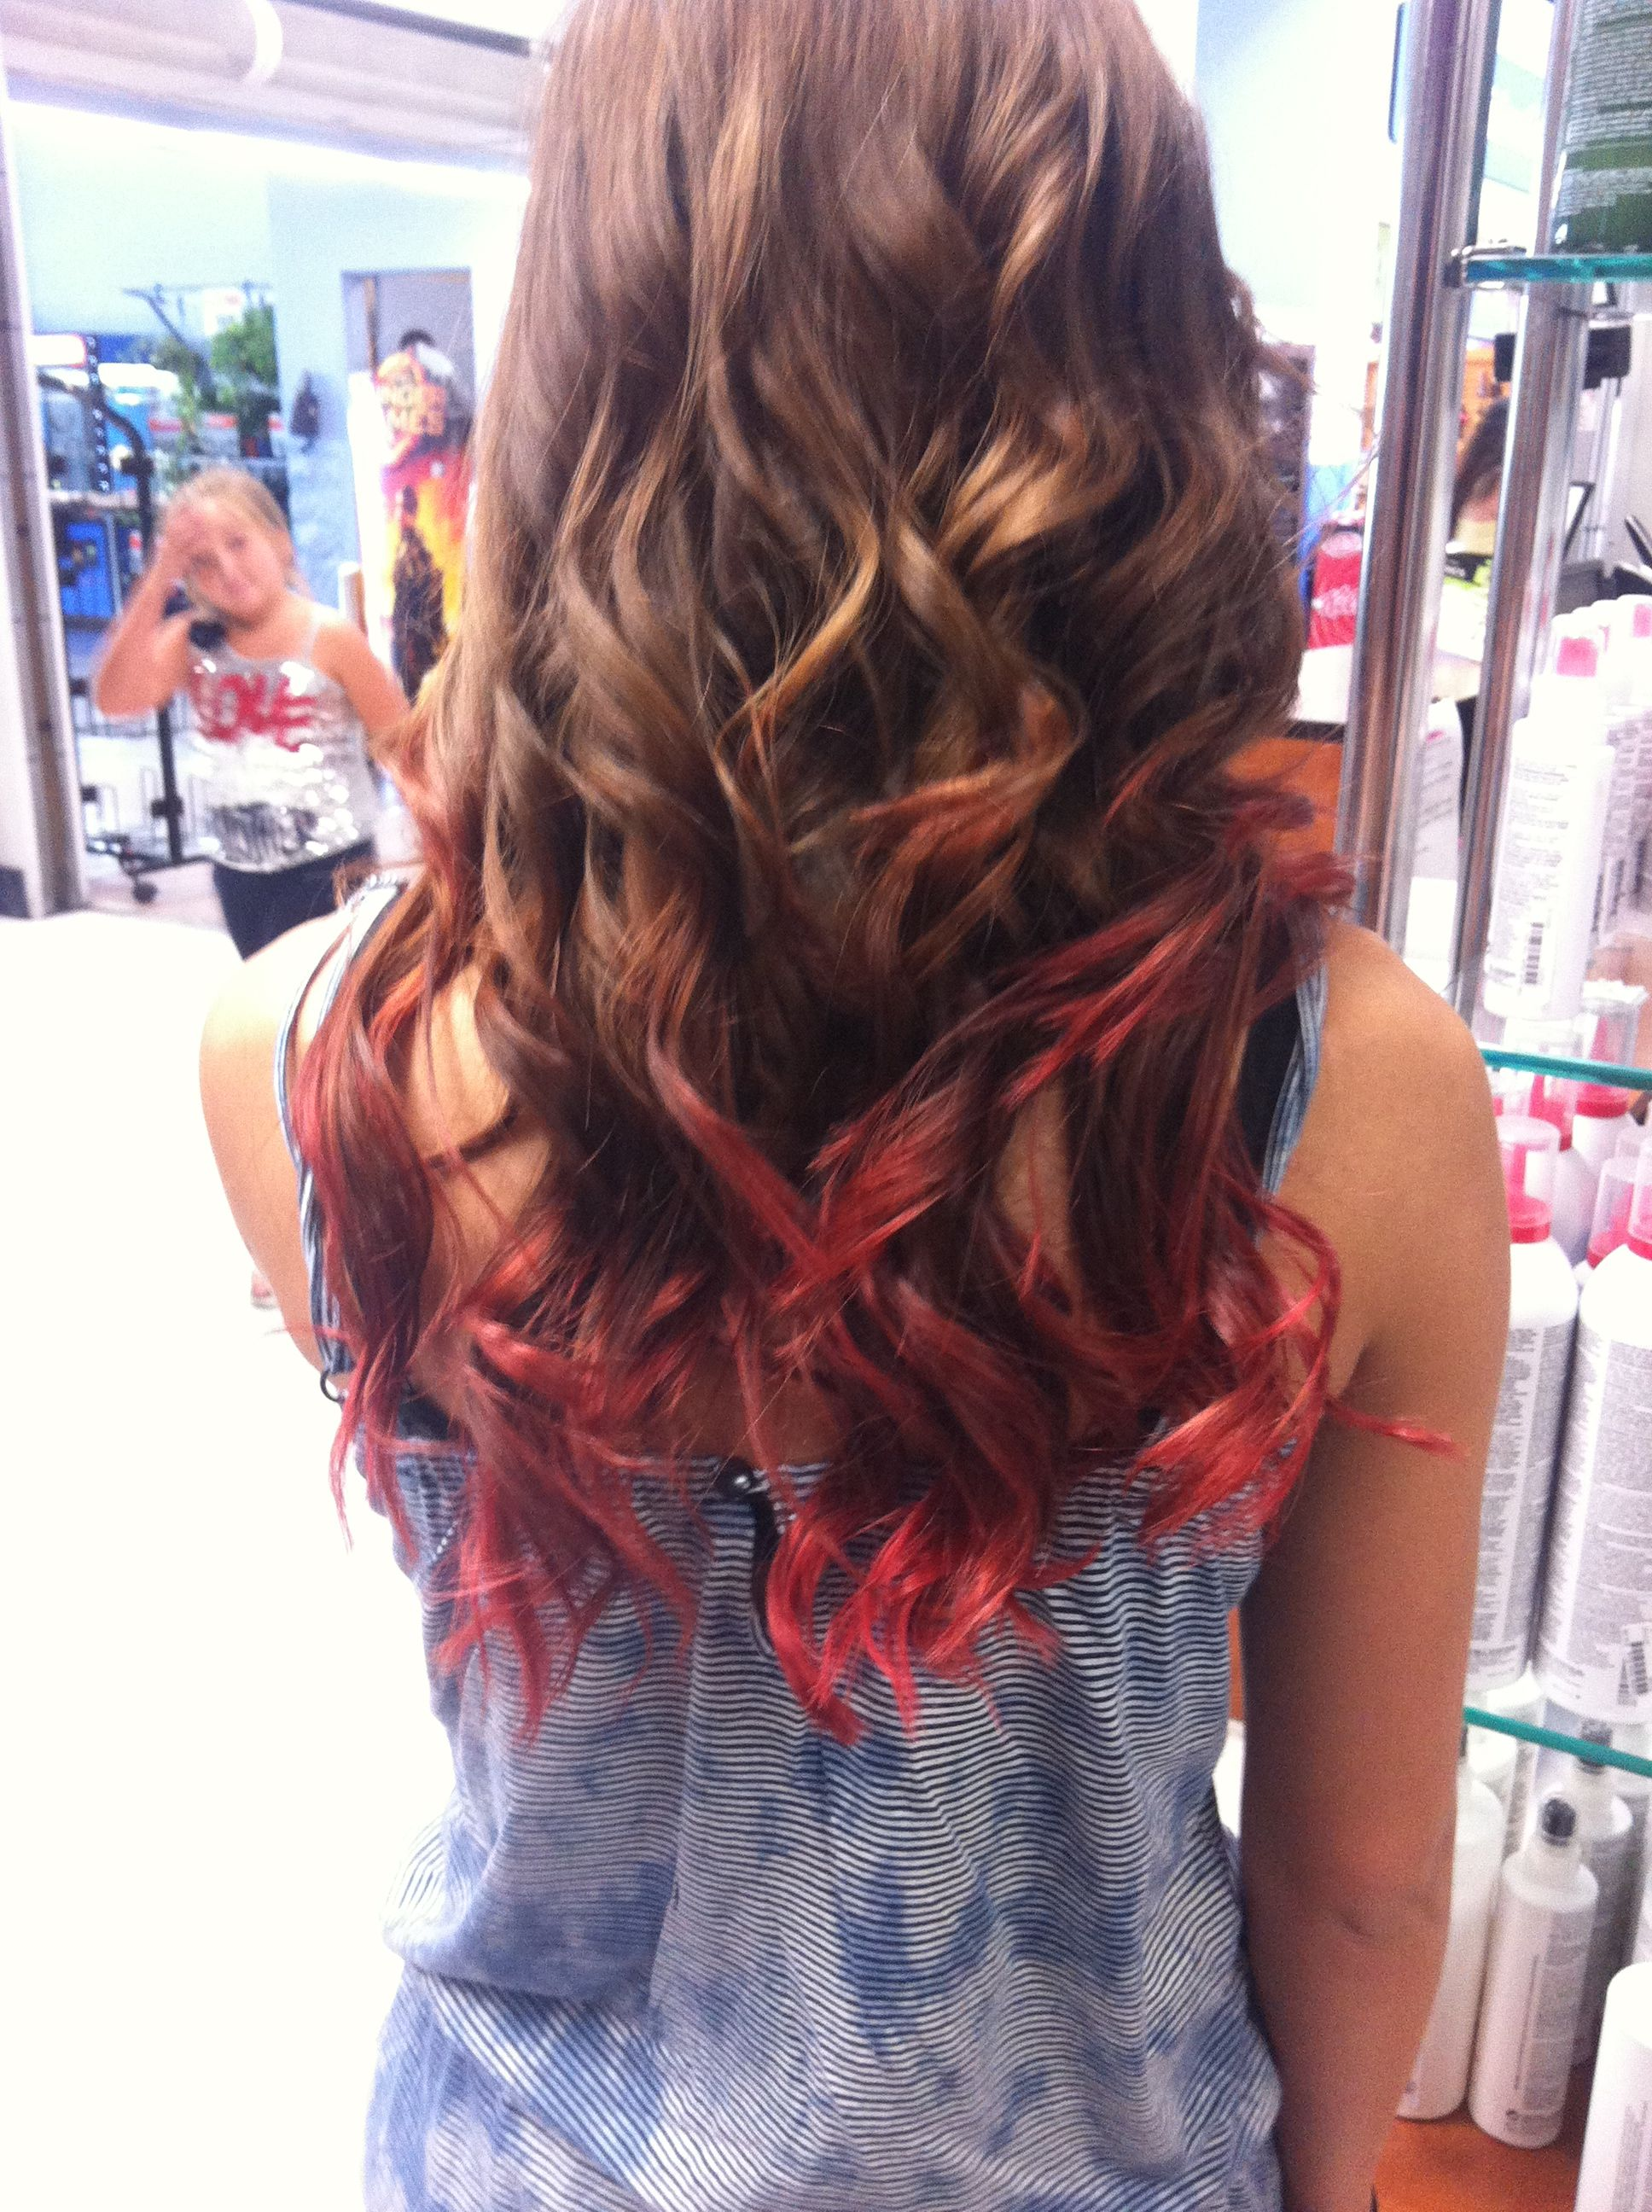 3 Shades of red ombré